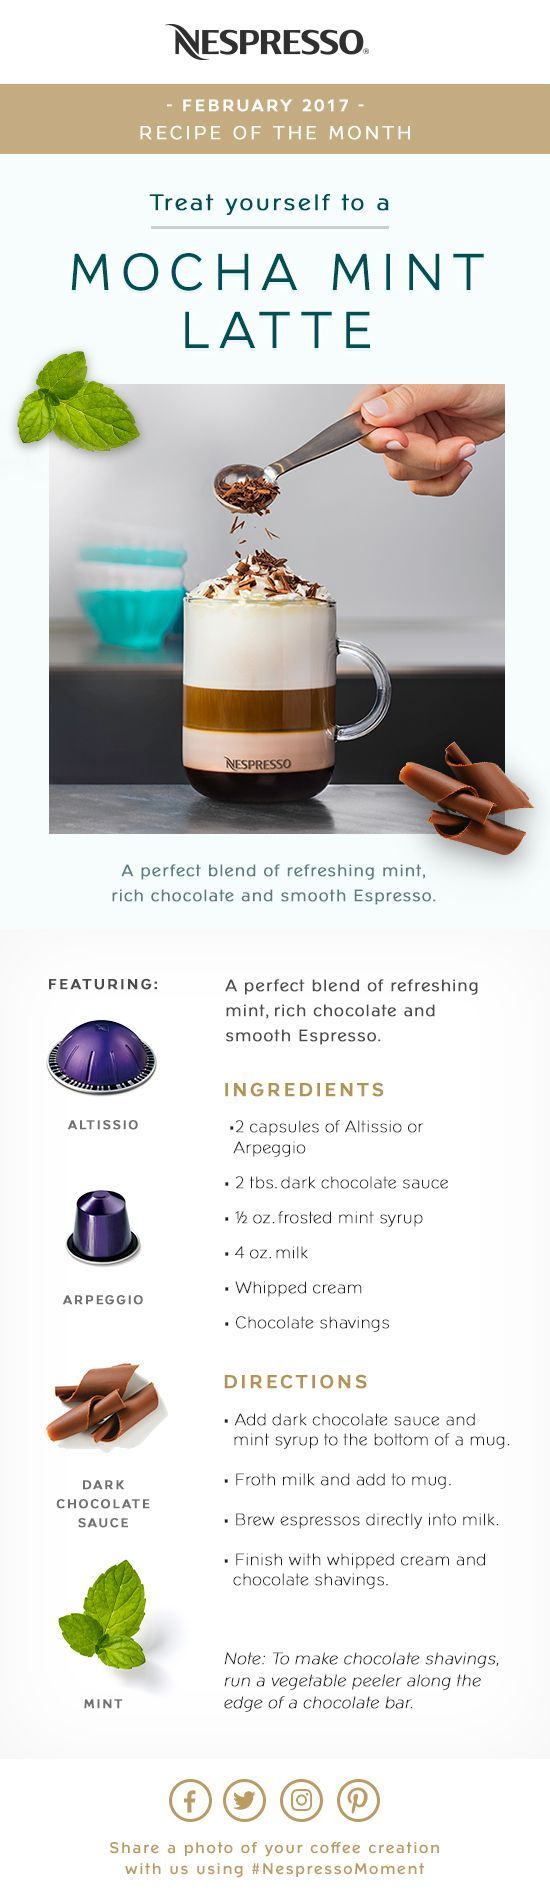 Best 25+ Nespresso recipes ideas on Pinterest | Nespresso, About ...